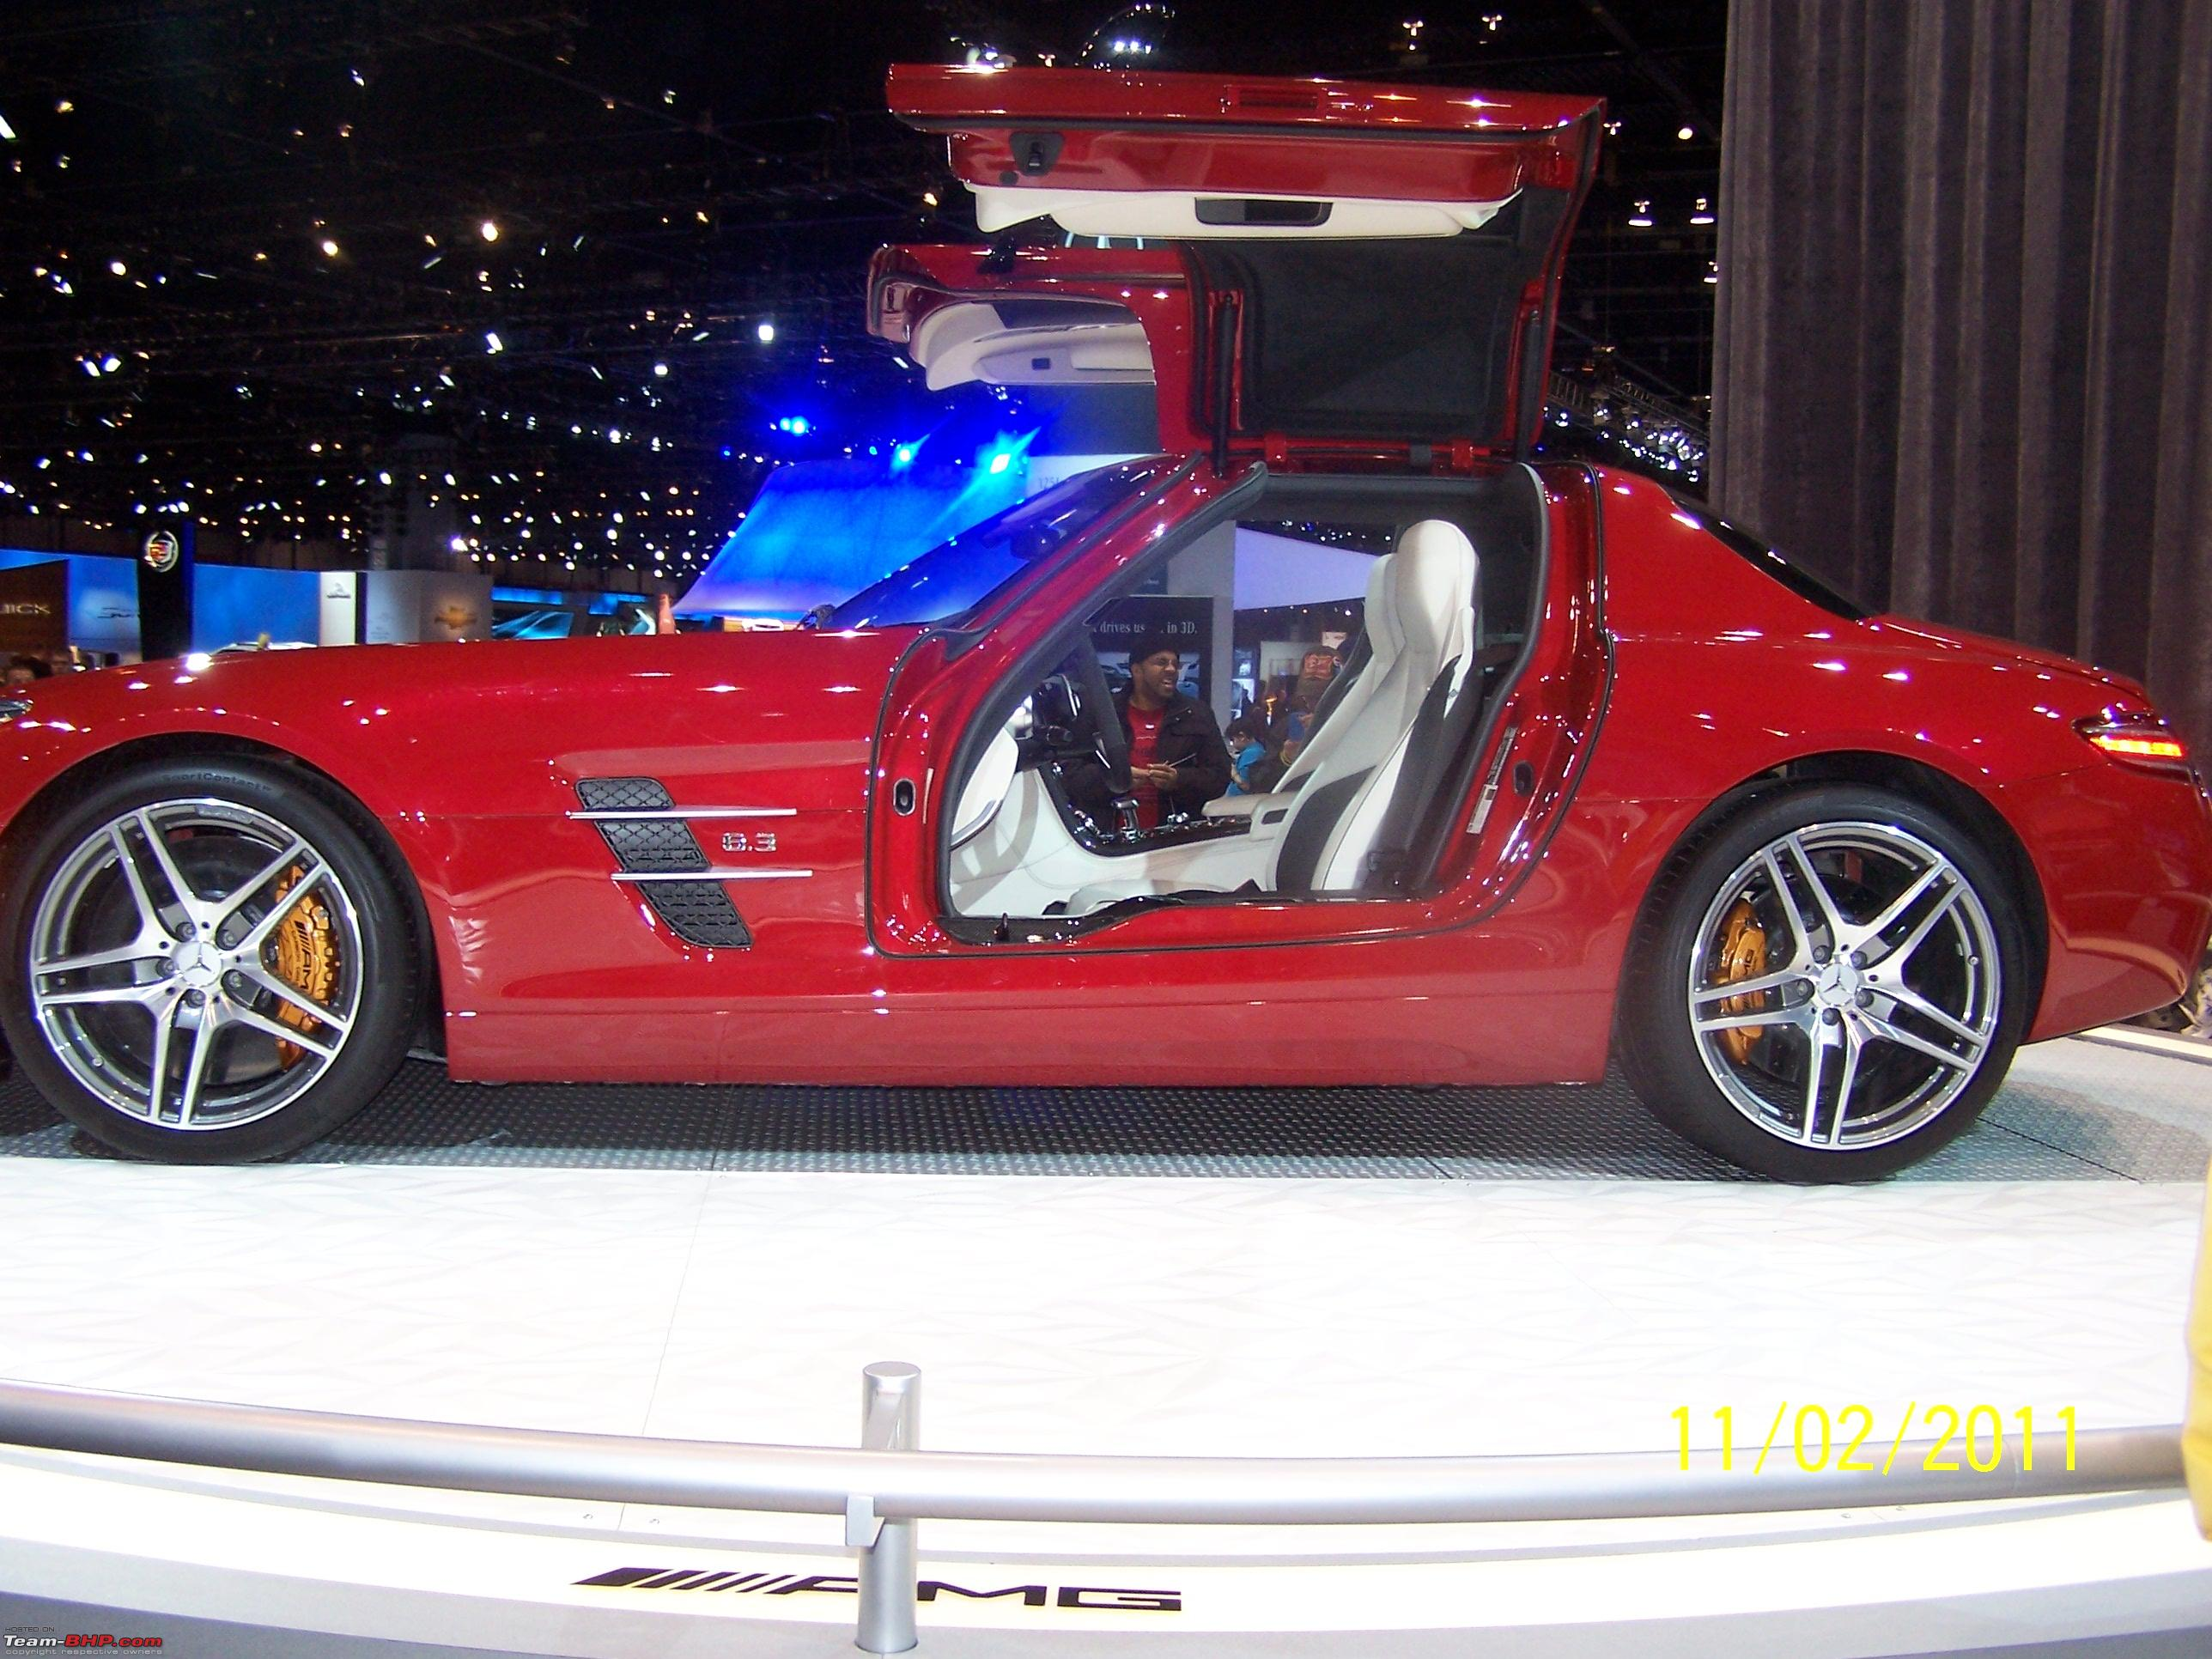 2011 Chicago Auto Show - Team-